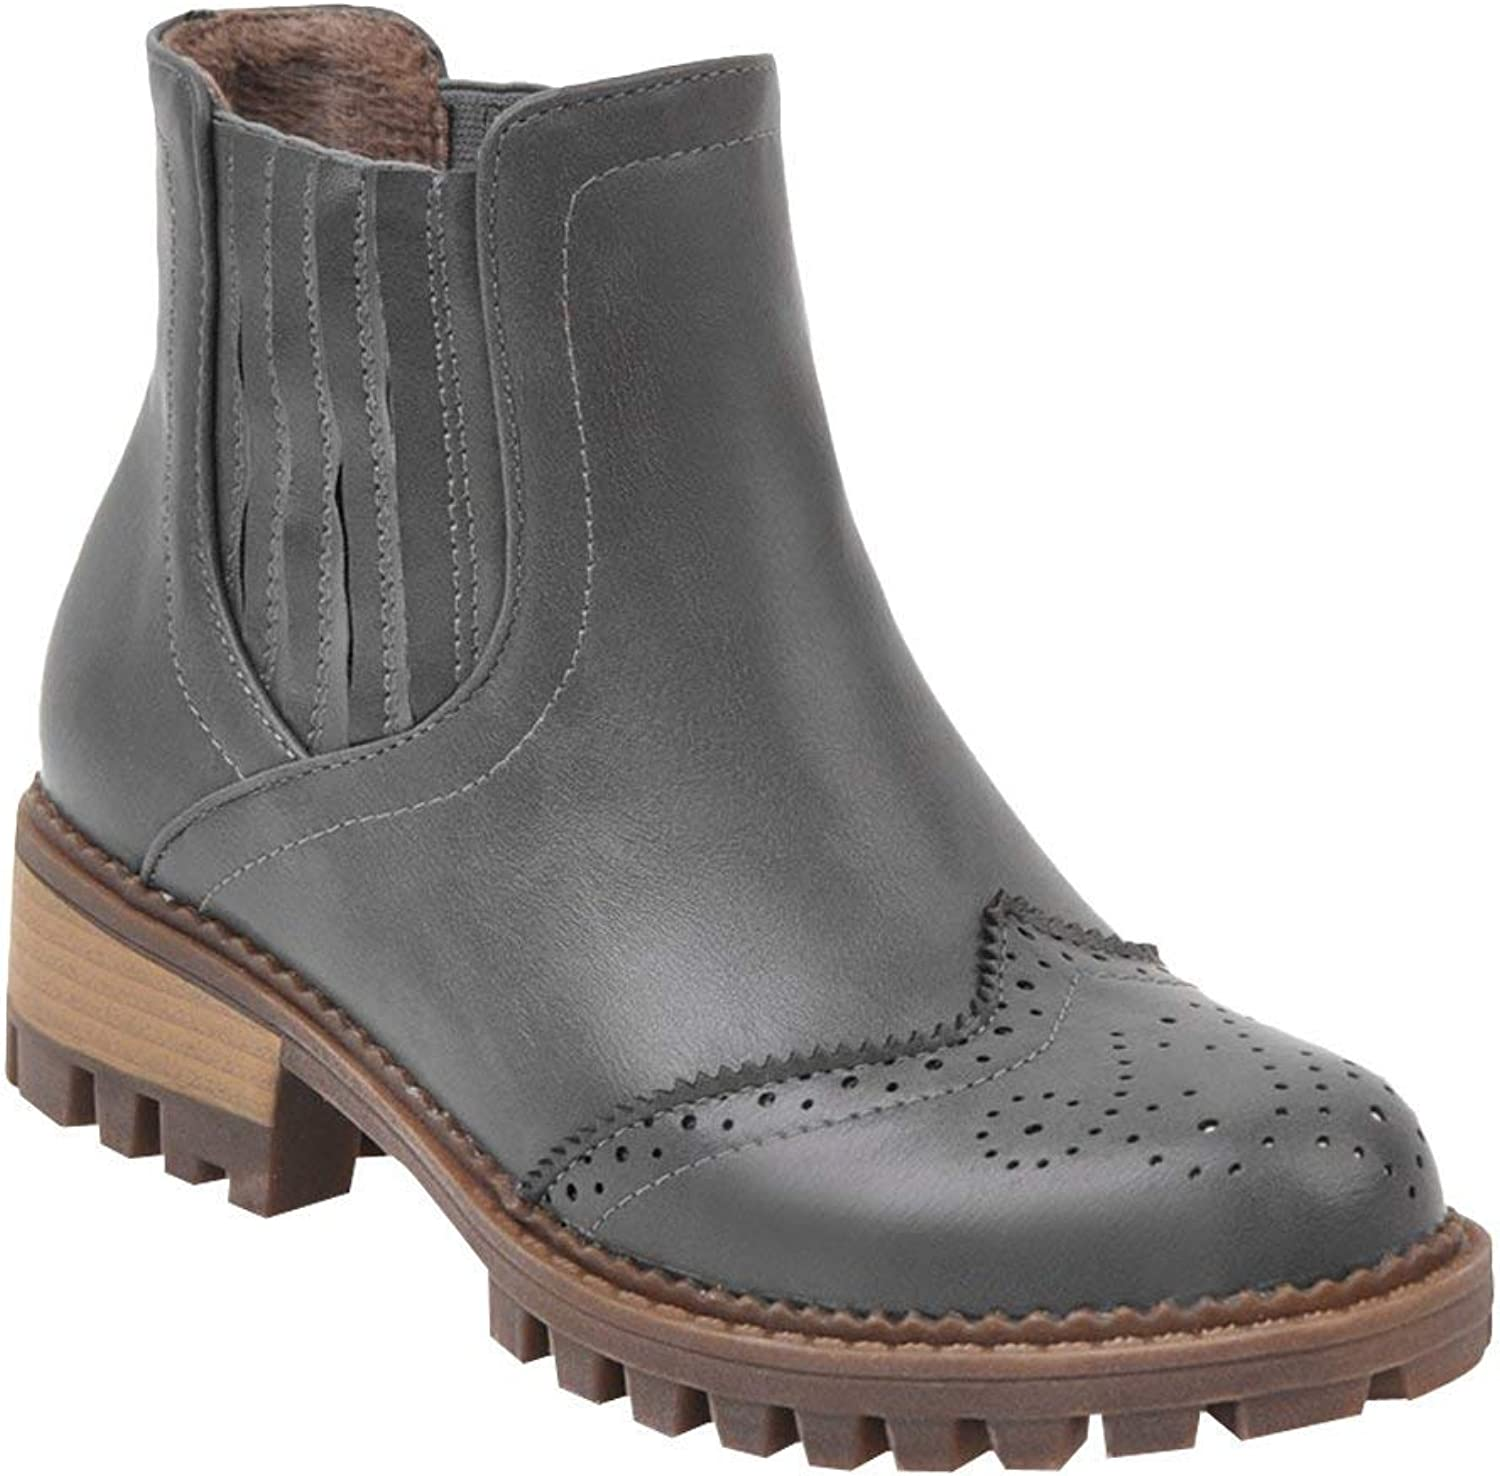 ZX Boots Women's Chunky Heel Chelsea Boots